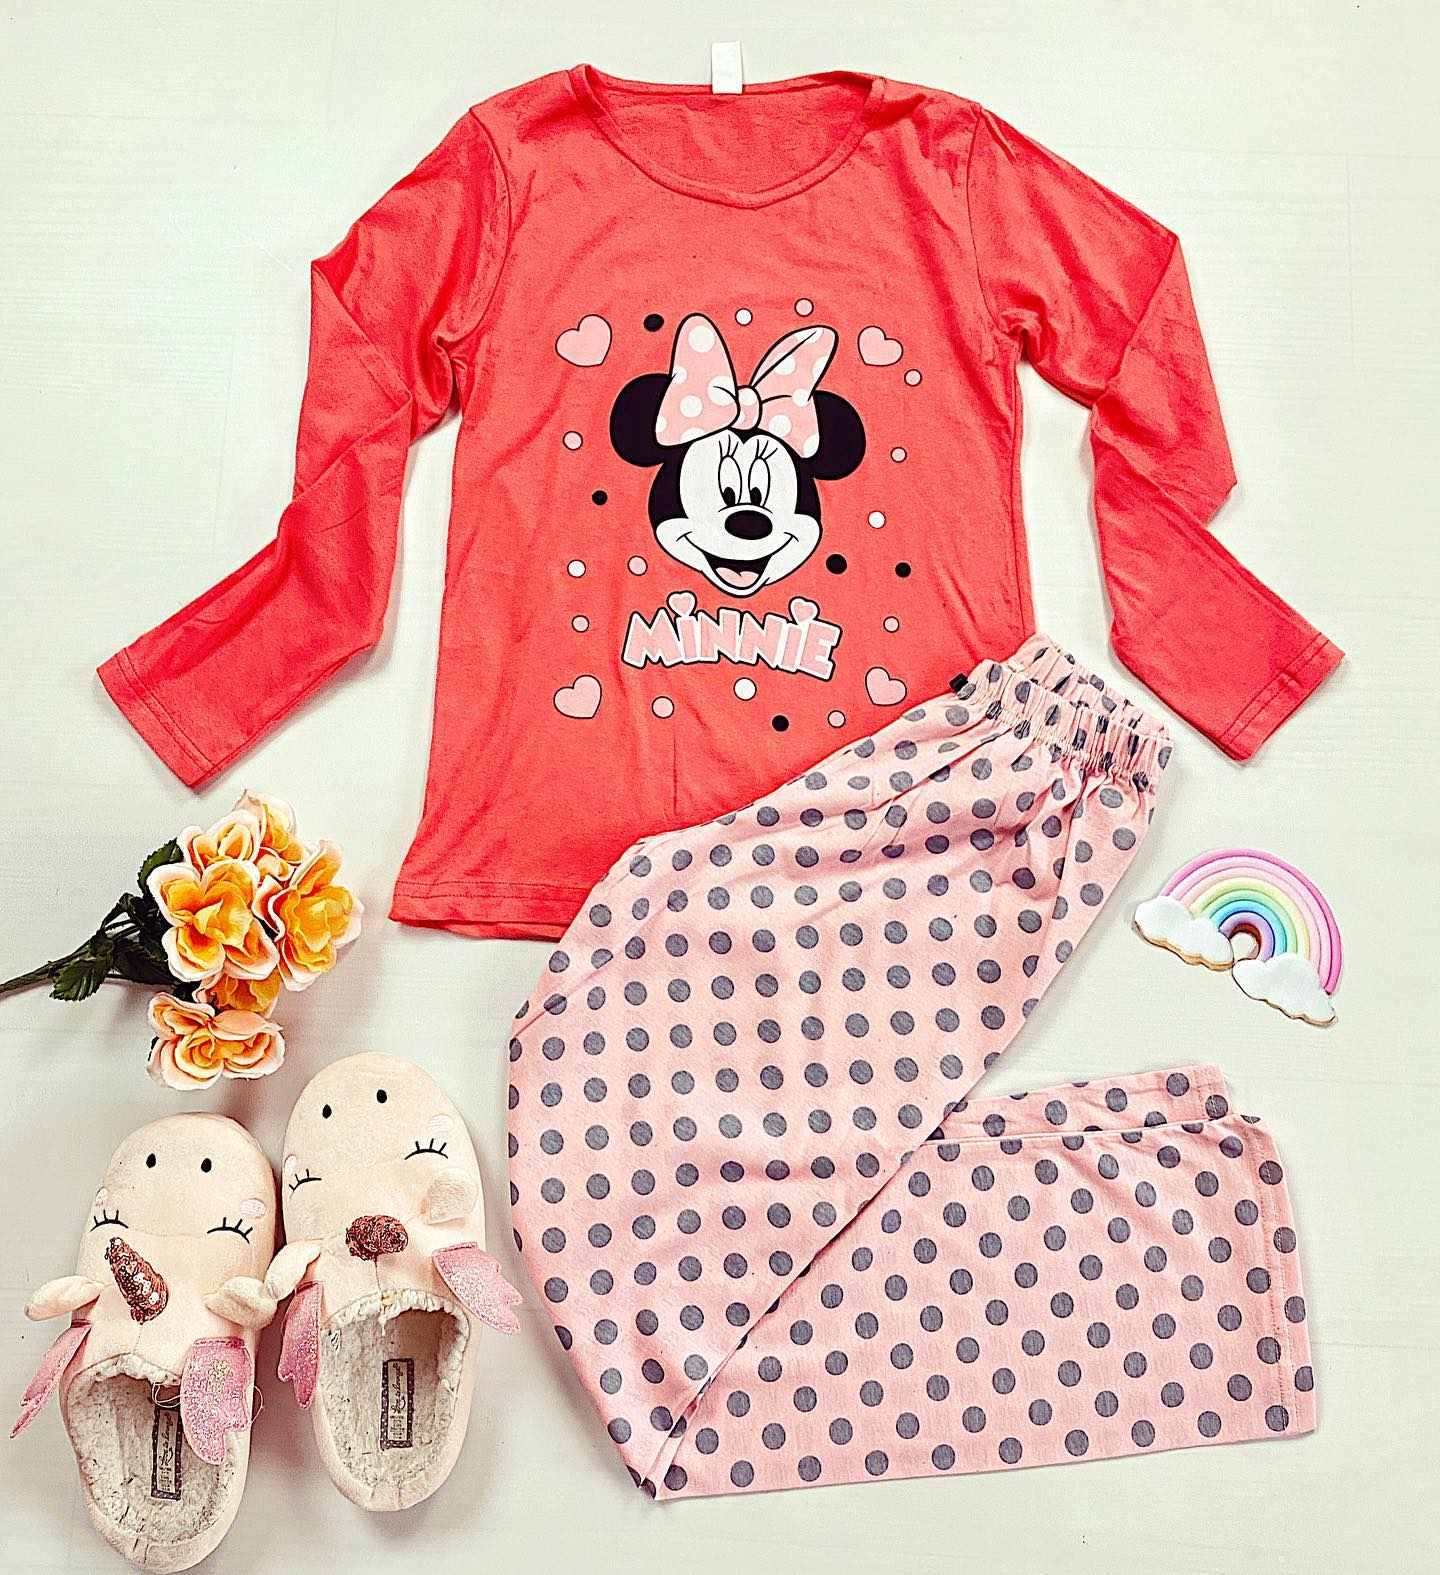 😱Minnie e personajul vostru preferat, asa ca am adus multe pijamale noi cu acest imprimeu superb🧡🧡 Cumpara-ti cele mai frumoase pijamale la oferta: 2 la 79 lei! #onlineshopping #shopping #clothes #women #pajamas #night #home #staysafe